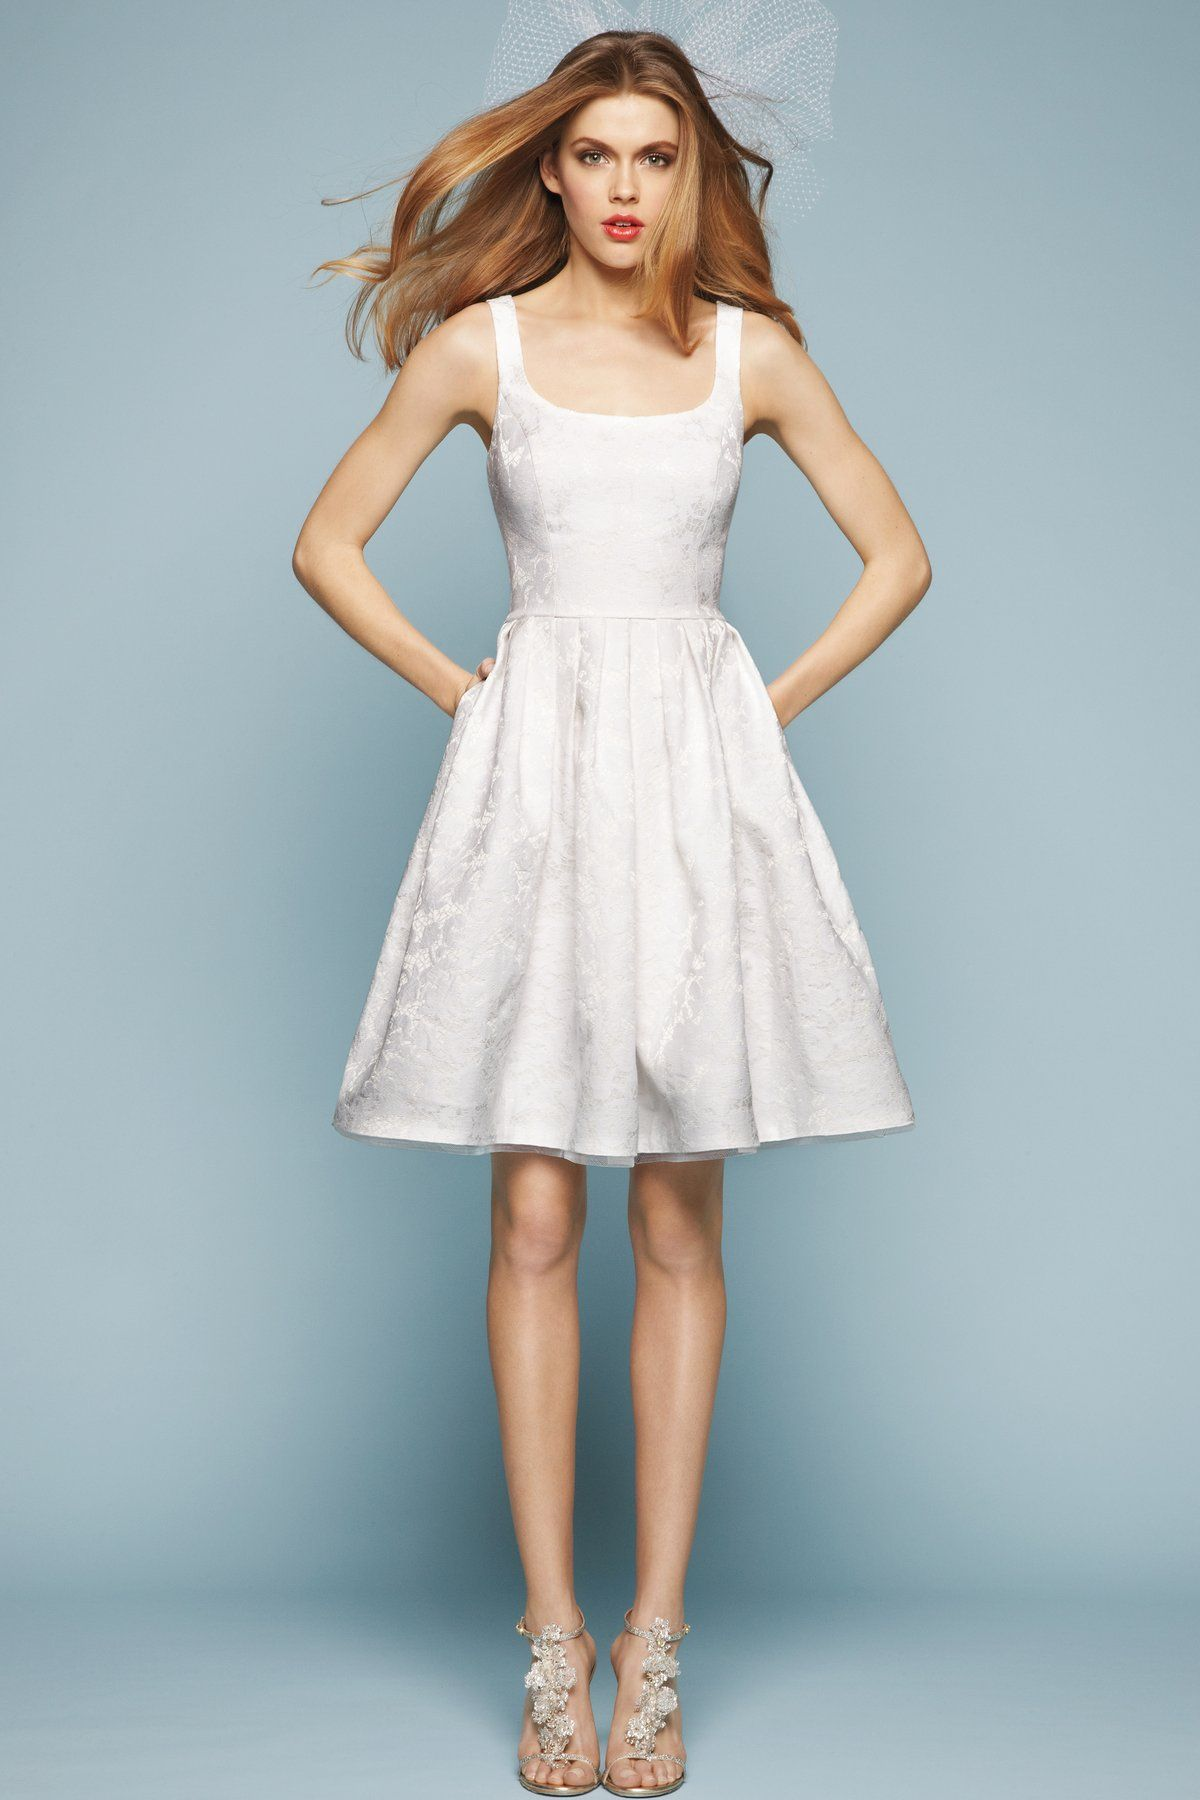 Watters Bridesmaids Dresses $300 | Hius | Pinterest | Weddings and ...